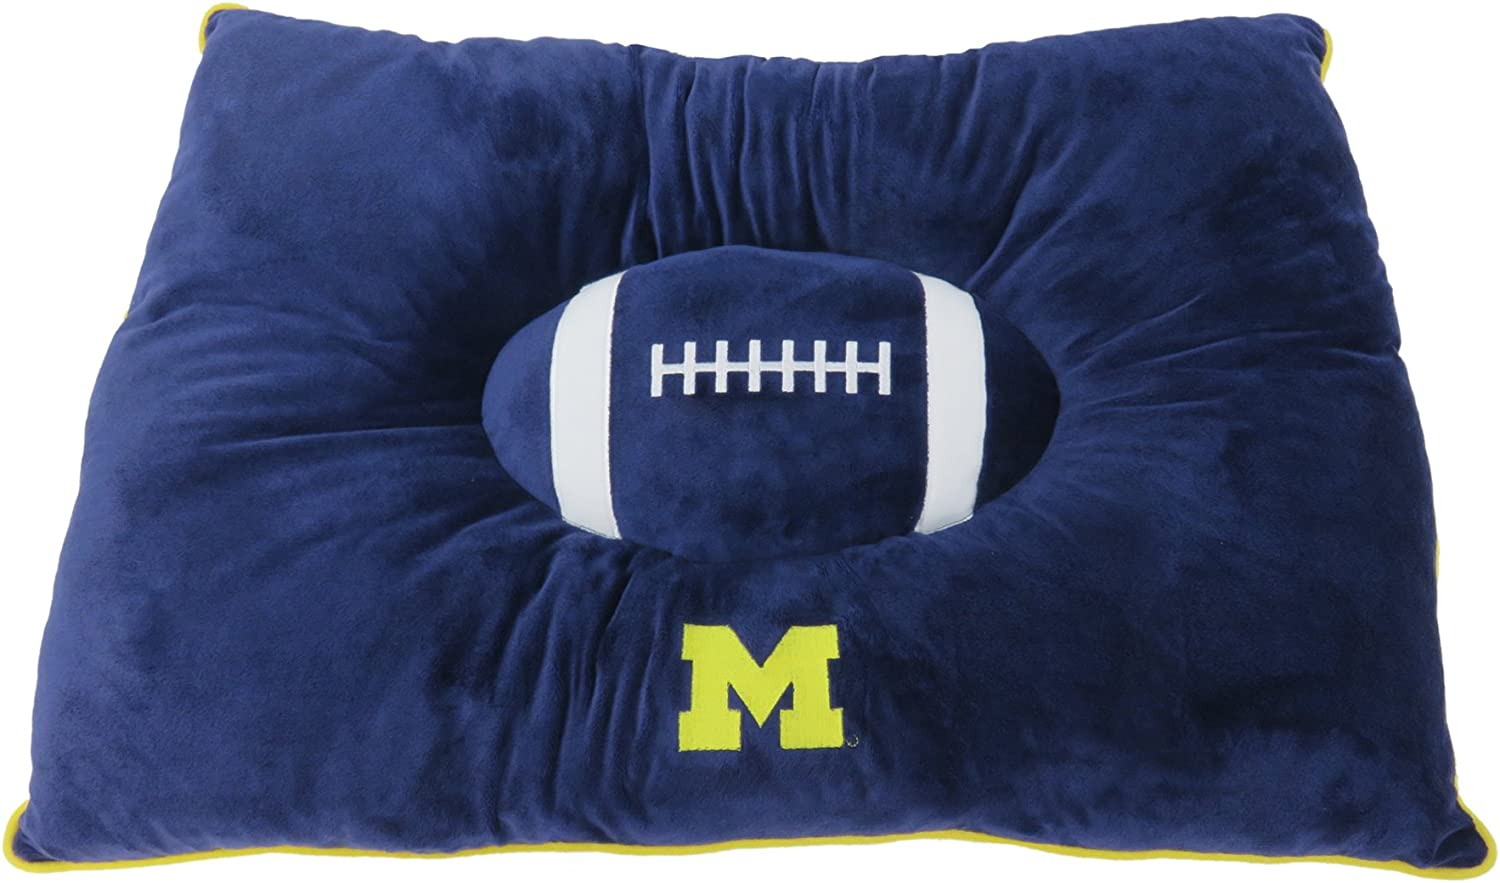 Dog Pillow 16 x 16 x 3 inches Michigan Wolverines Pets First Collegiate Pet Accessories